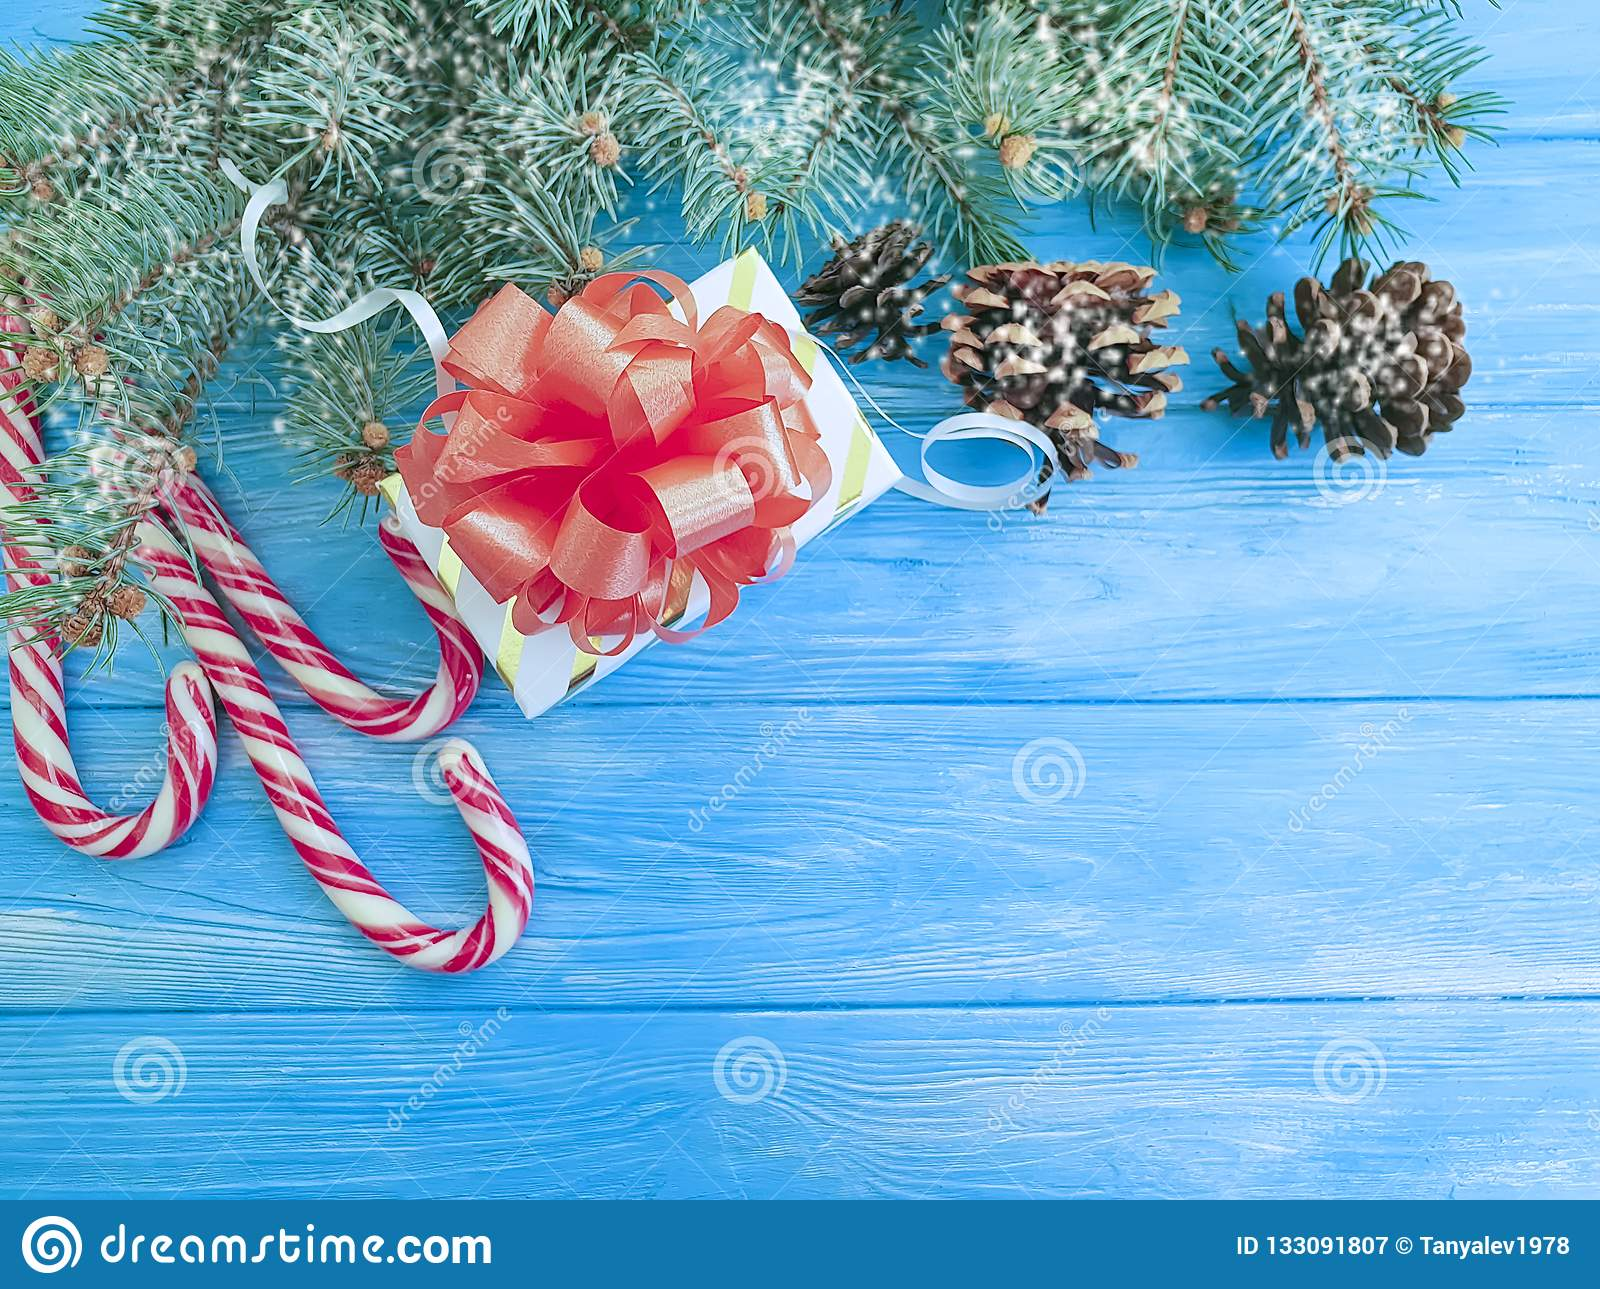 Candy Christmas Tree Branch Vintage Festive Decoration Border Present Snow Gift Box On A Blue Wooden Background Present Stock Image Image Of Snow Copy 133091807